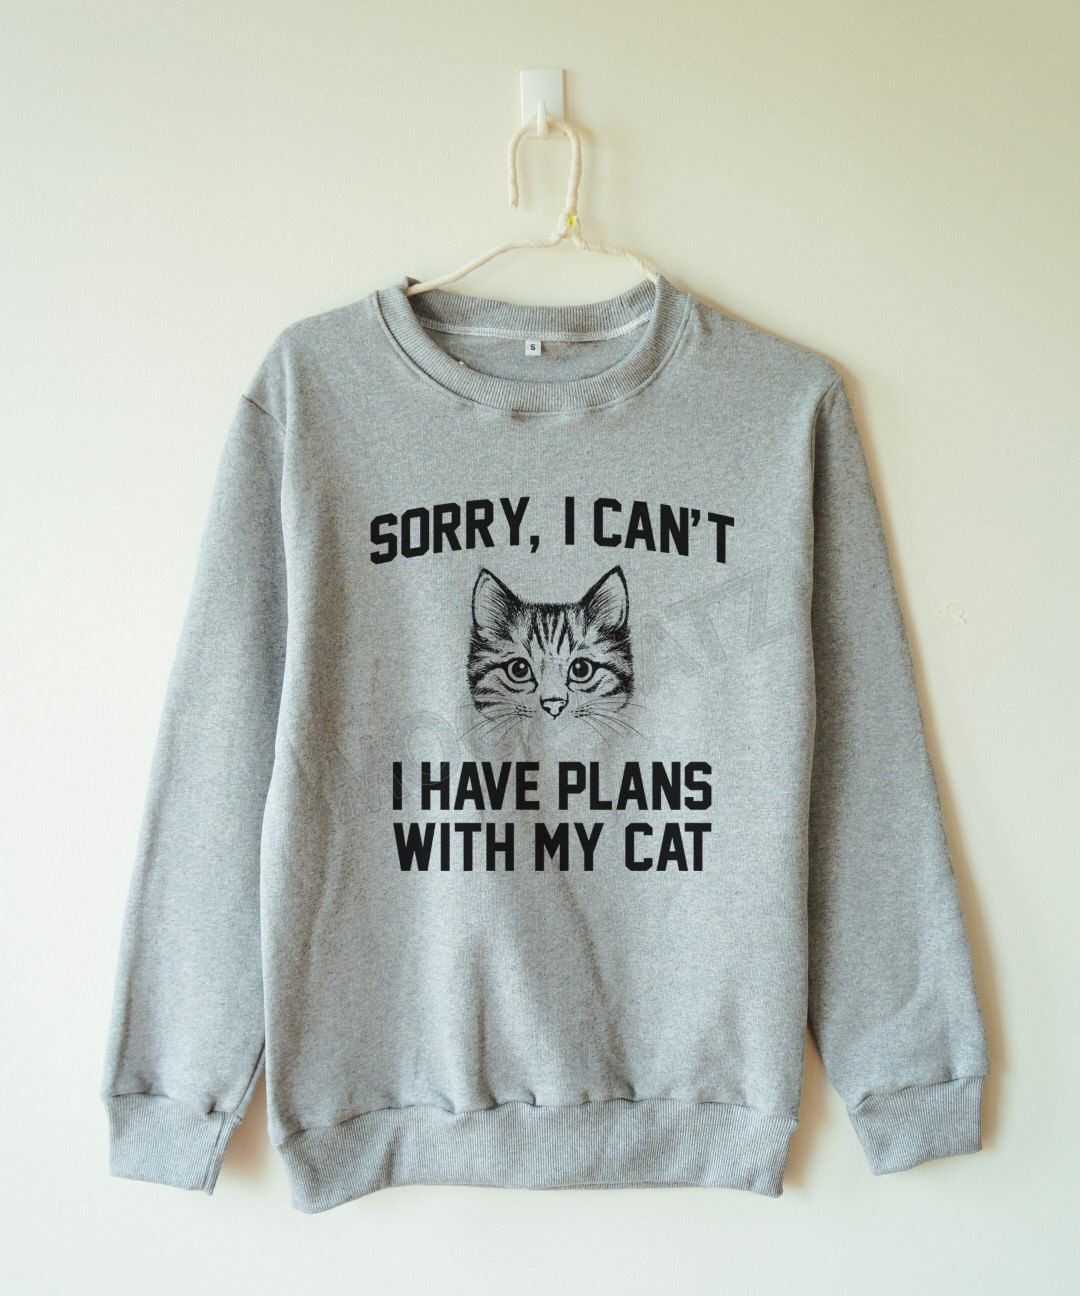 Black keys t shirt etsy - Sorry I Can T I Have Plans With My Cat Shirt Cat Sweater Funny